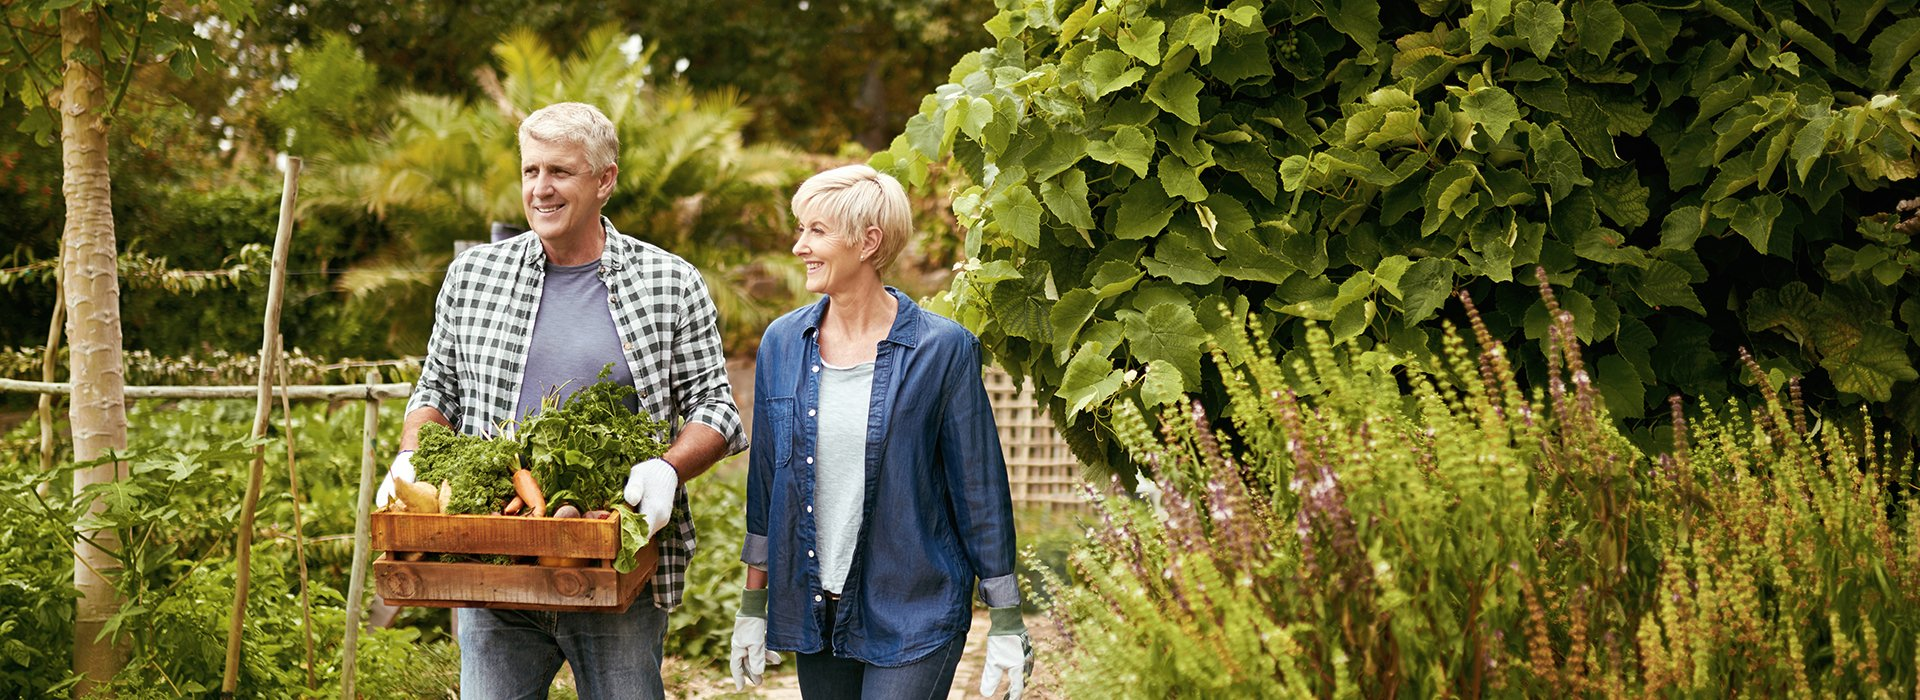 Couple walking in garden.